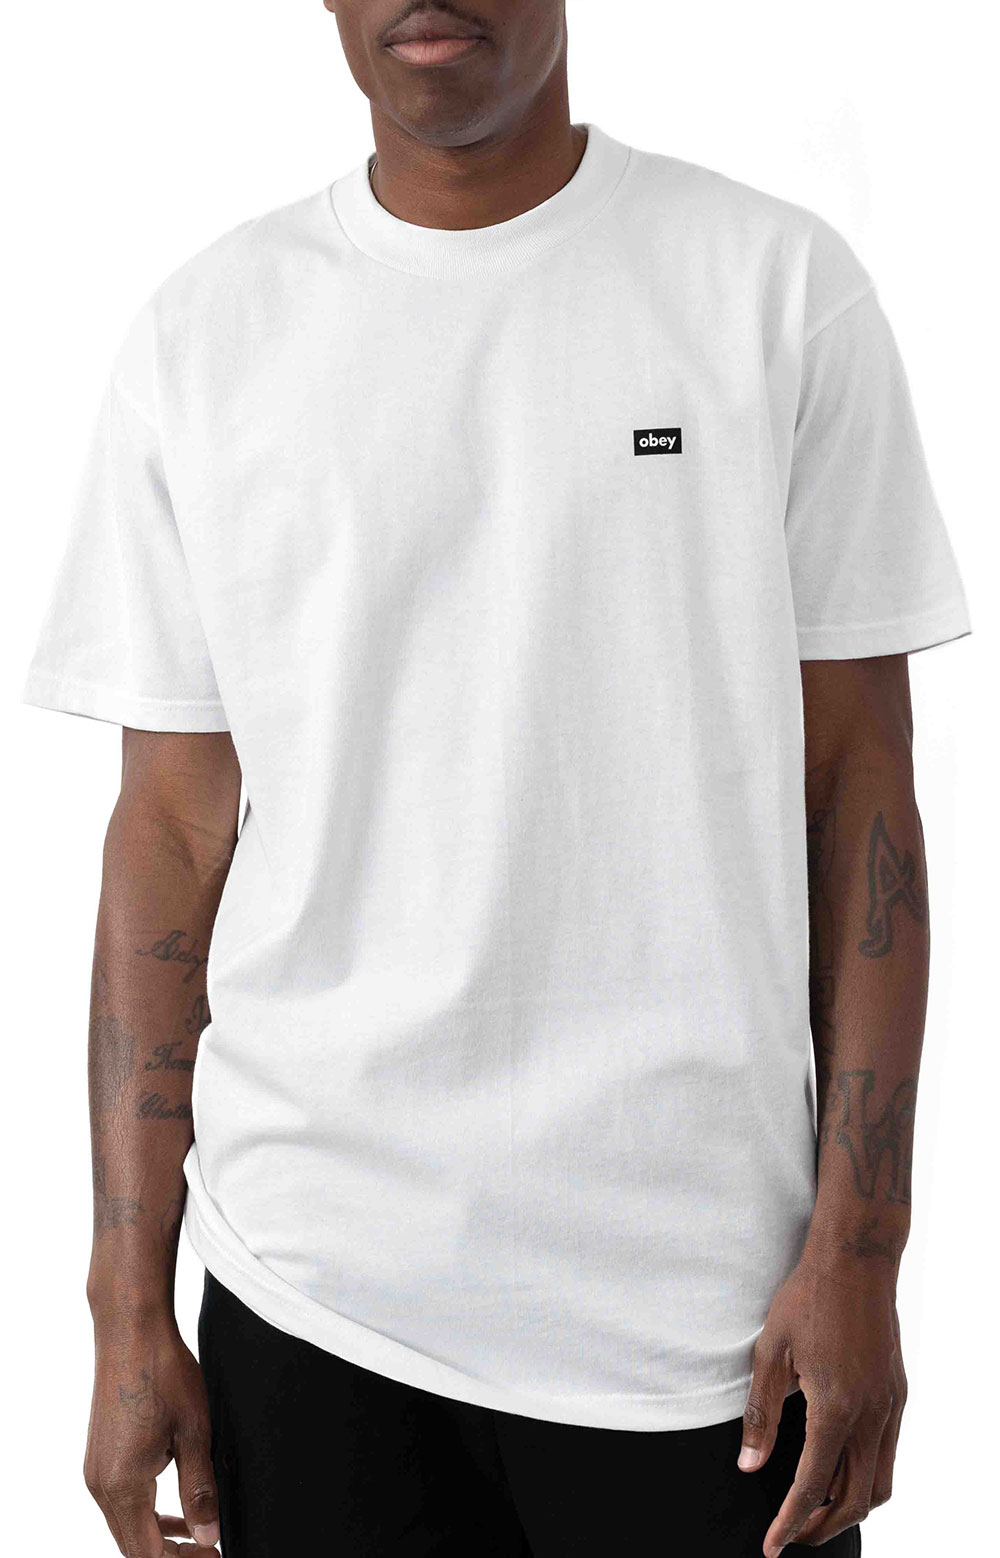 Seduction Of The Masses T-Shirt - White  2